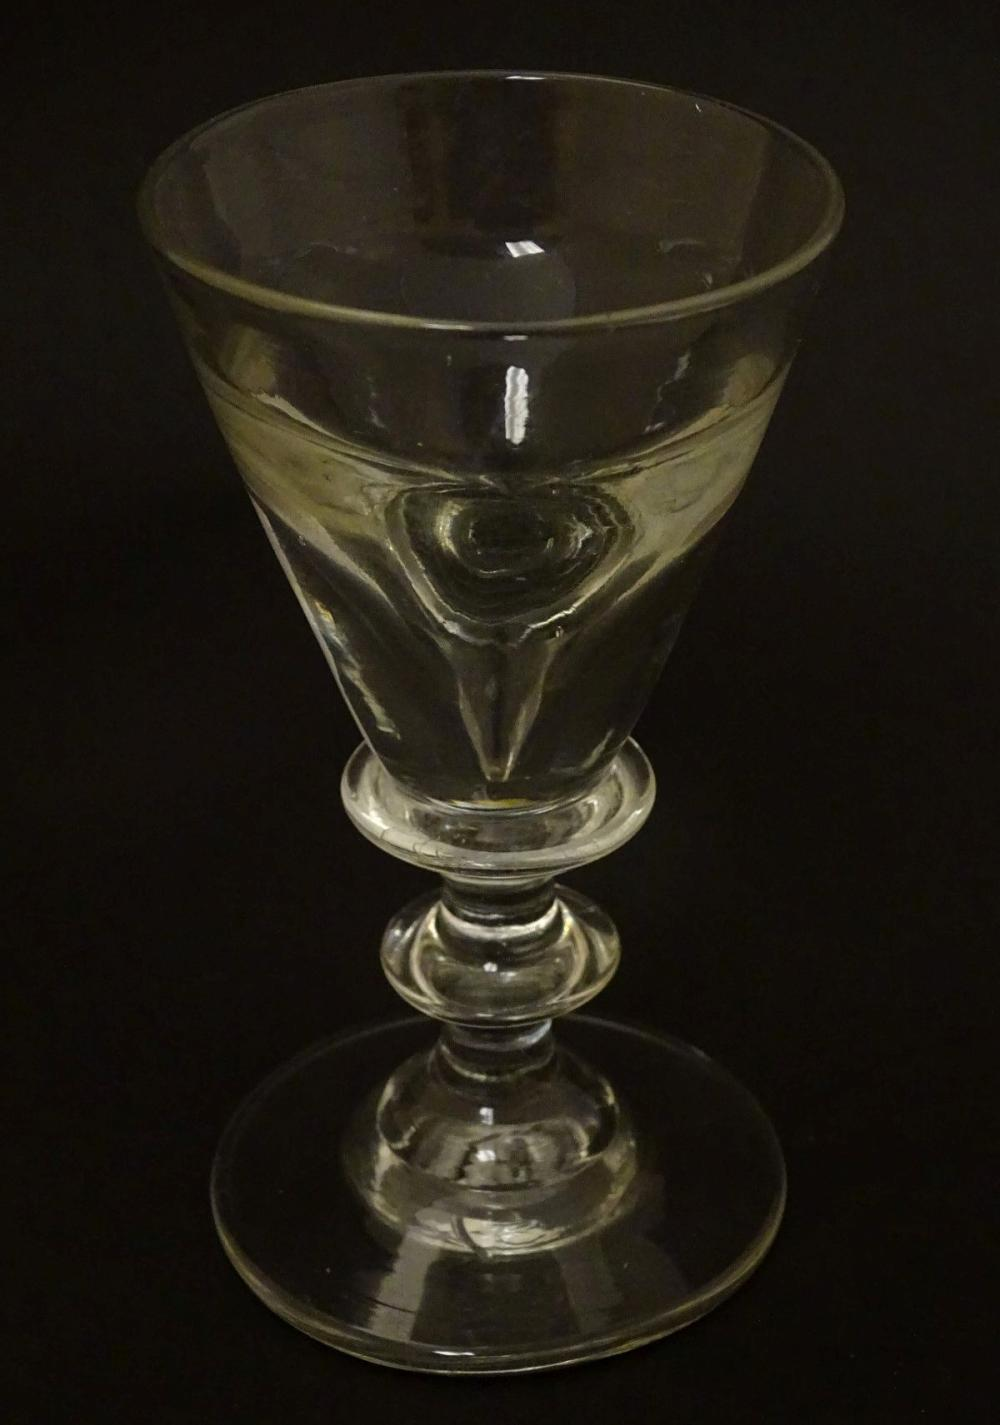 Glass: a late Georgian Toastmasters / Illusion wine glass of pedestal form, standing 4'' high